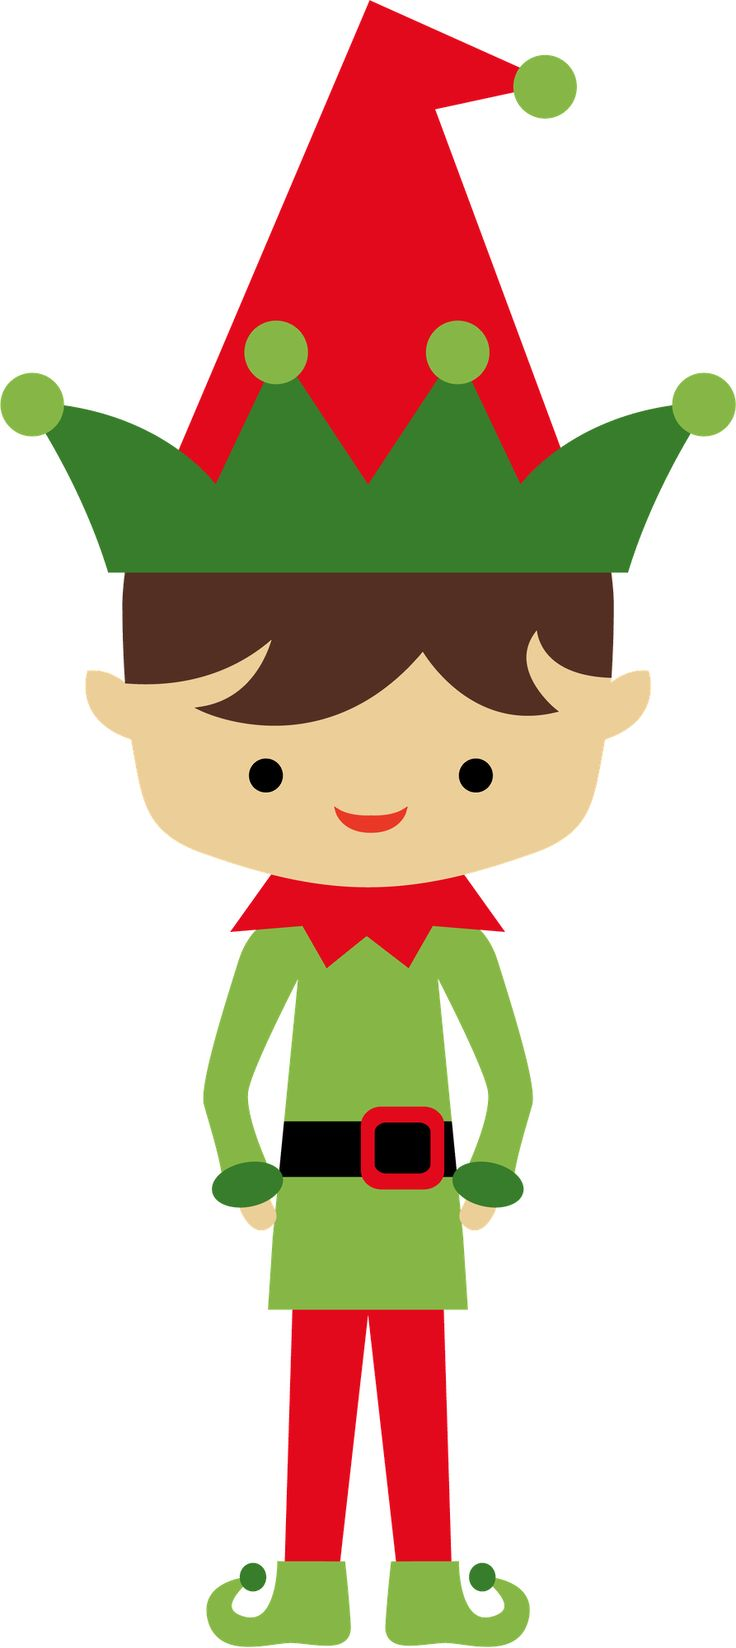 41 Free Elf Clipart - Cliparting.com